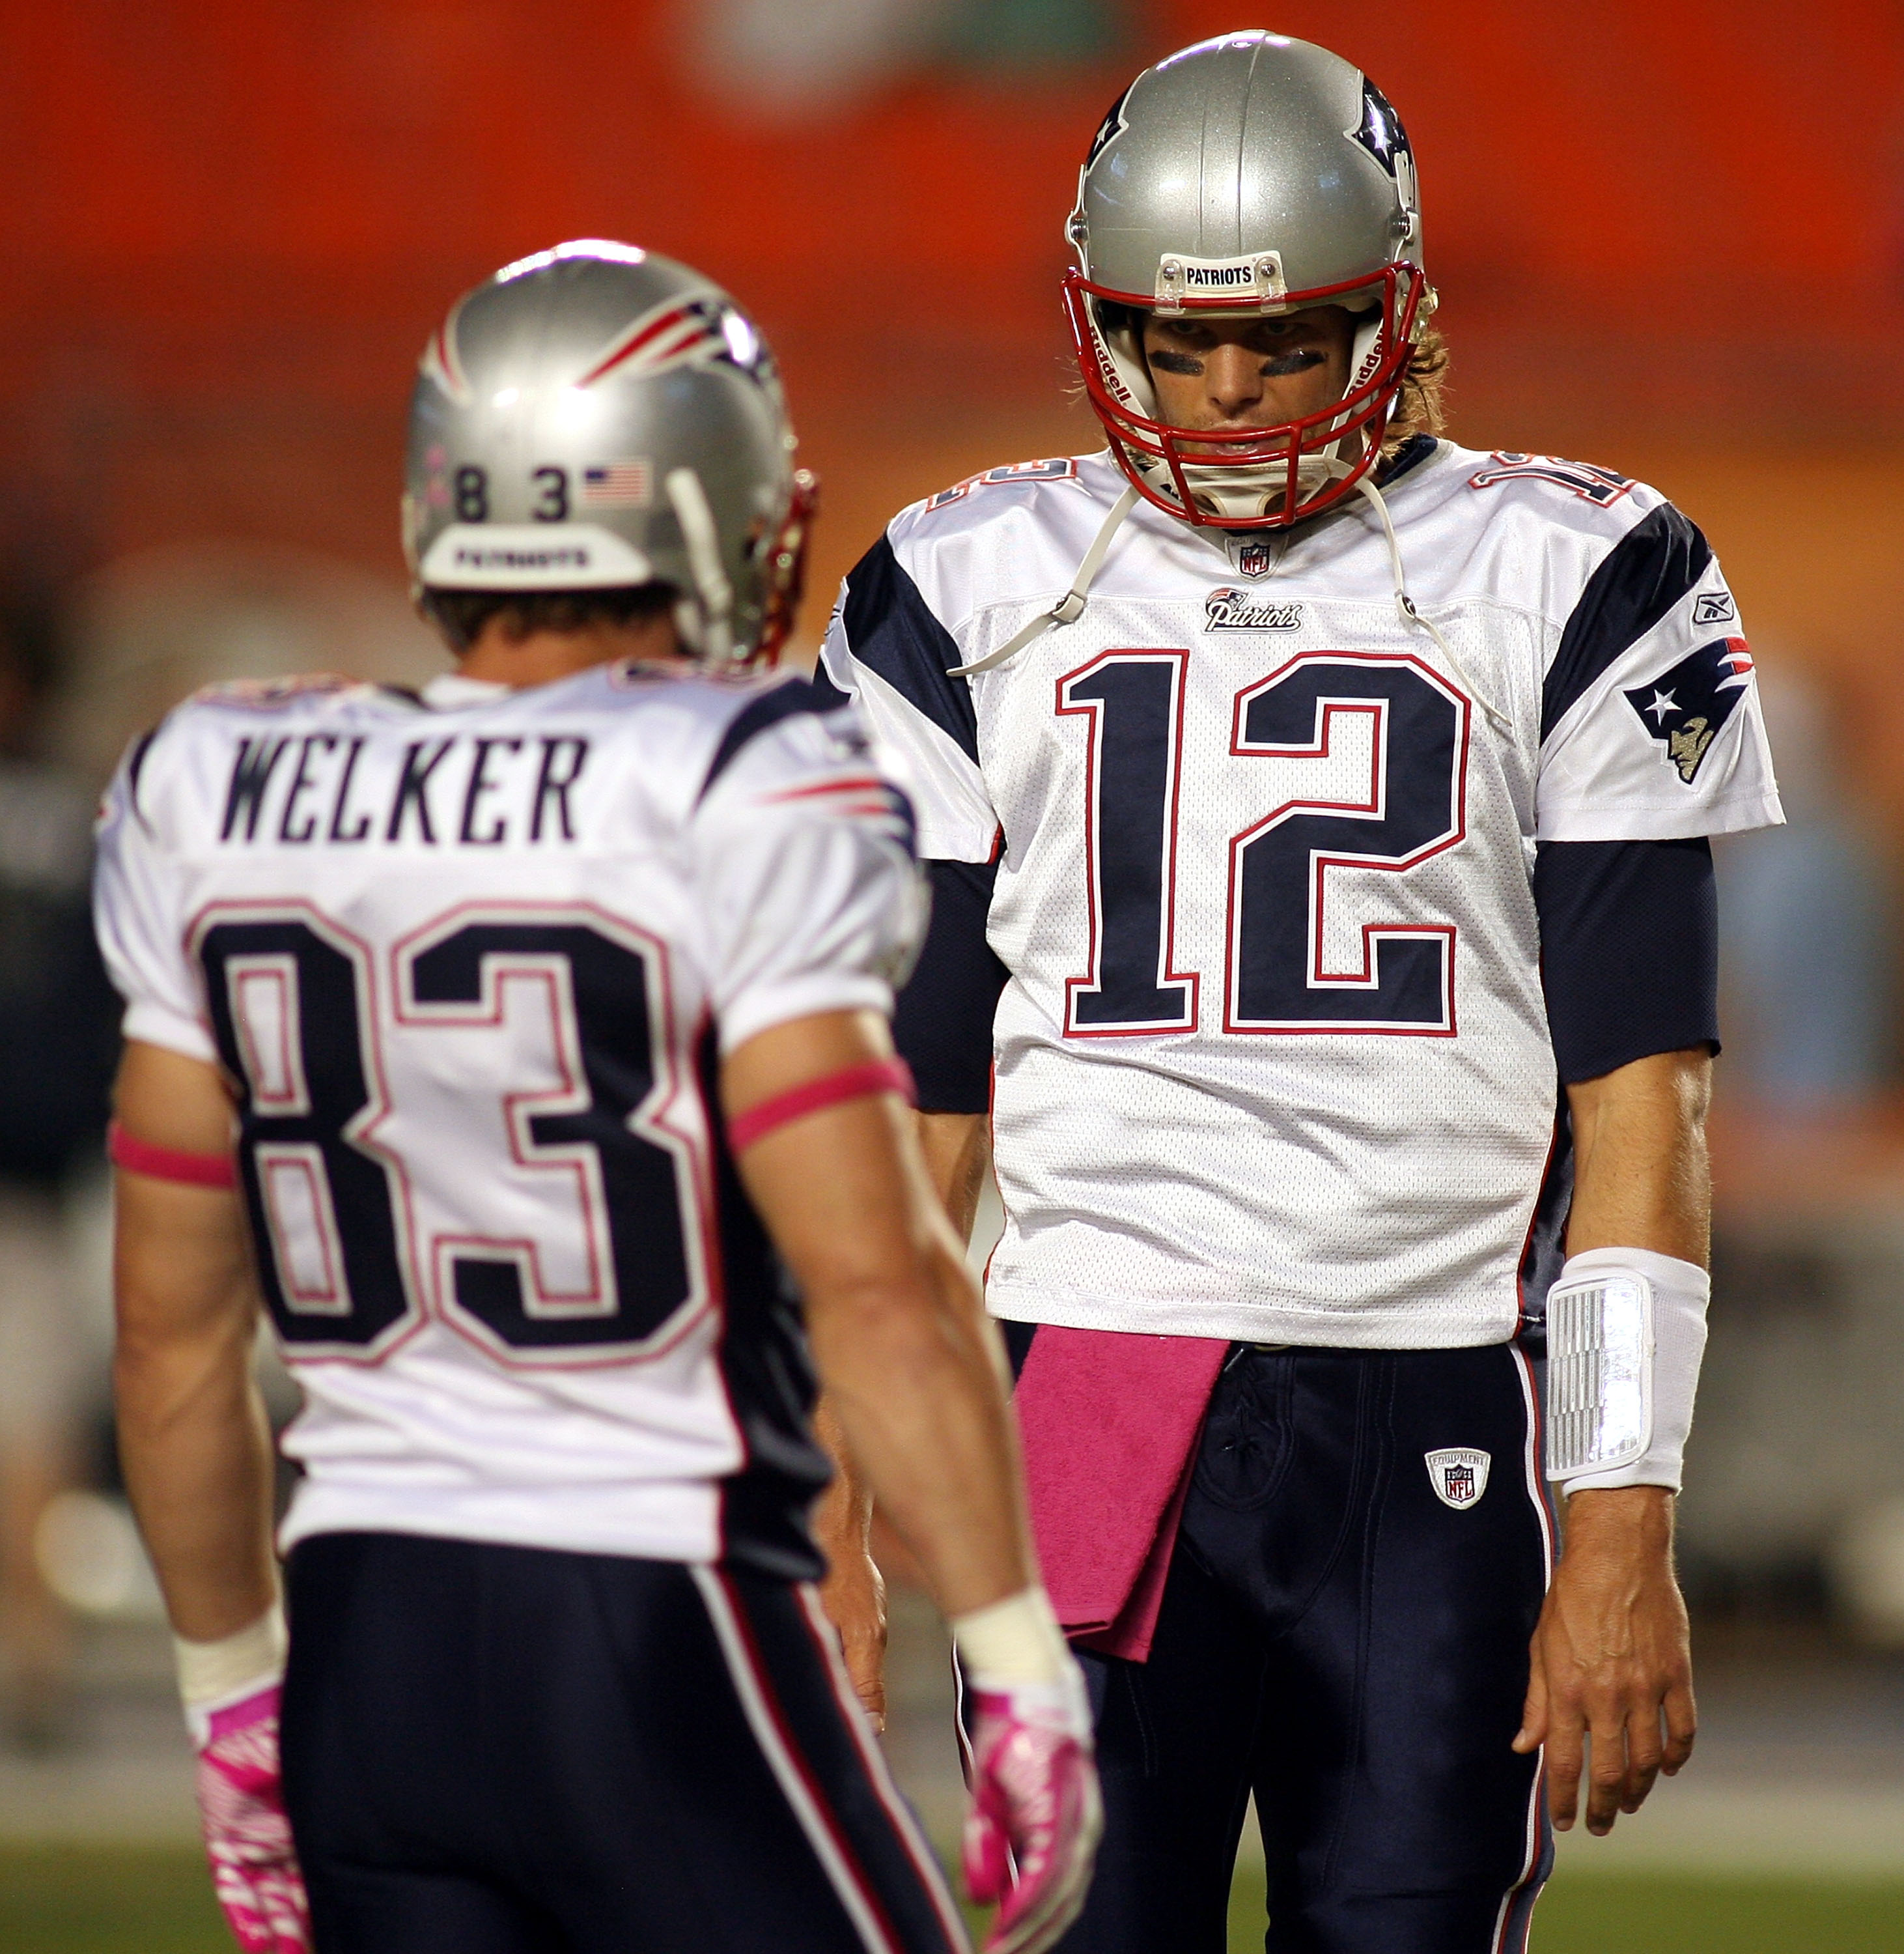 MIAMI - OCTOBER 04:  Quarterback Tom Brady #12 of the New England Patriots with Reciever Wes Welker #83 during warm ups against the Miami Dolphins at Sun Life Stadium on October 4, 2010 in Miami, Florida.  (Photo by Marc Serota/Getty Images)